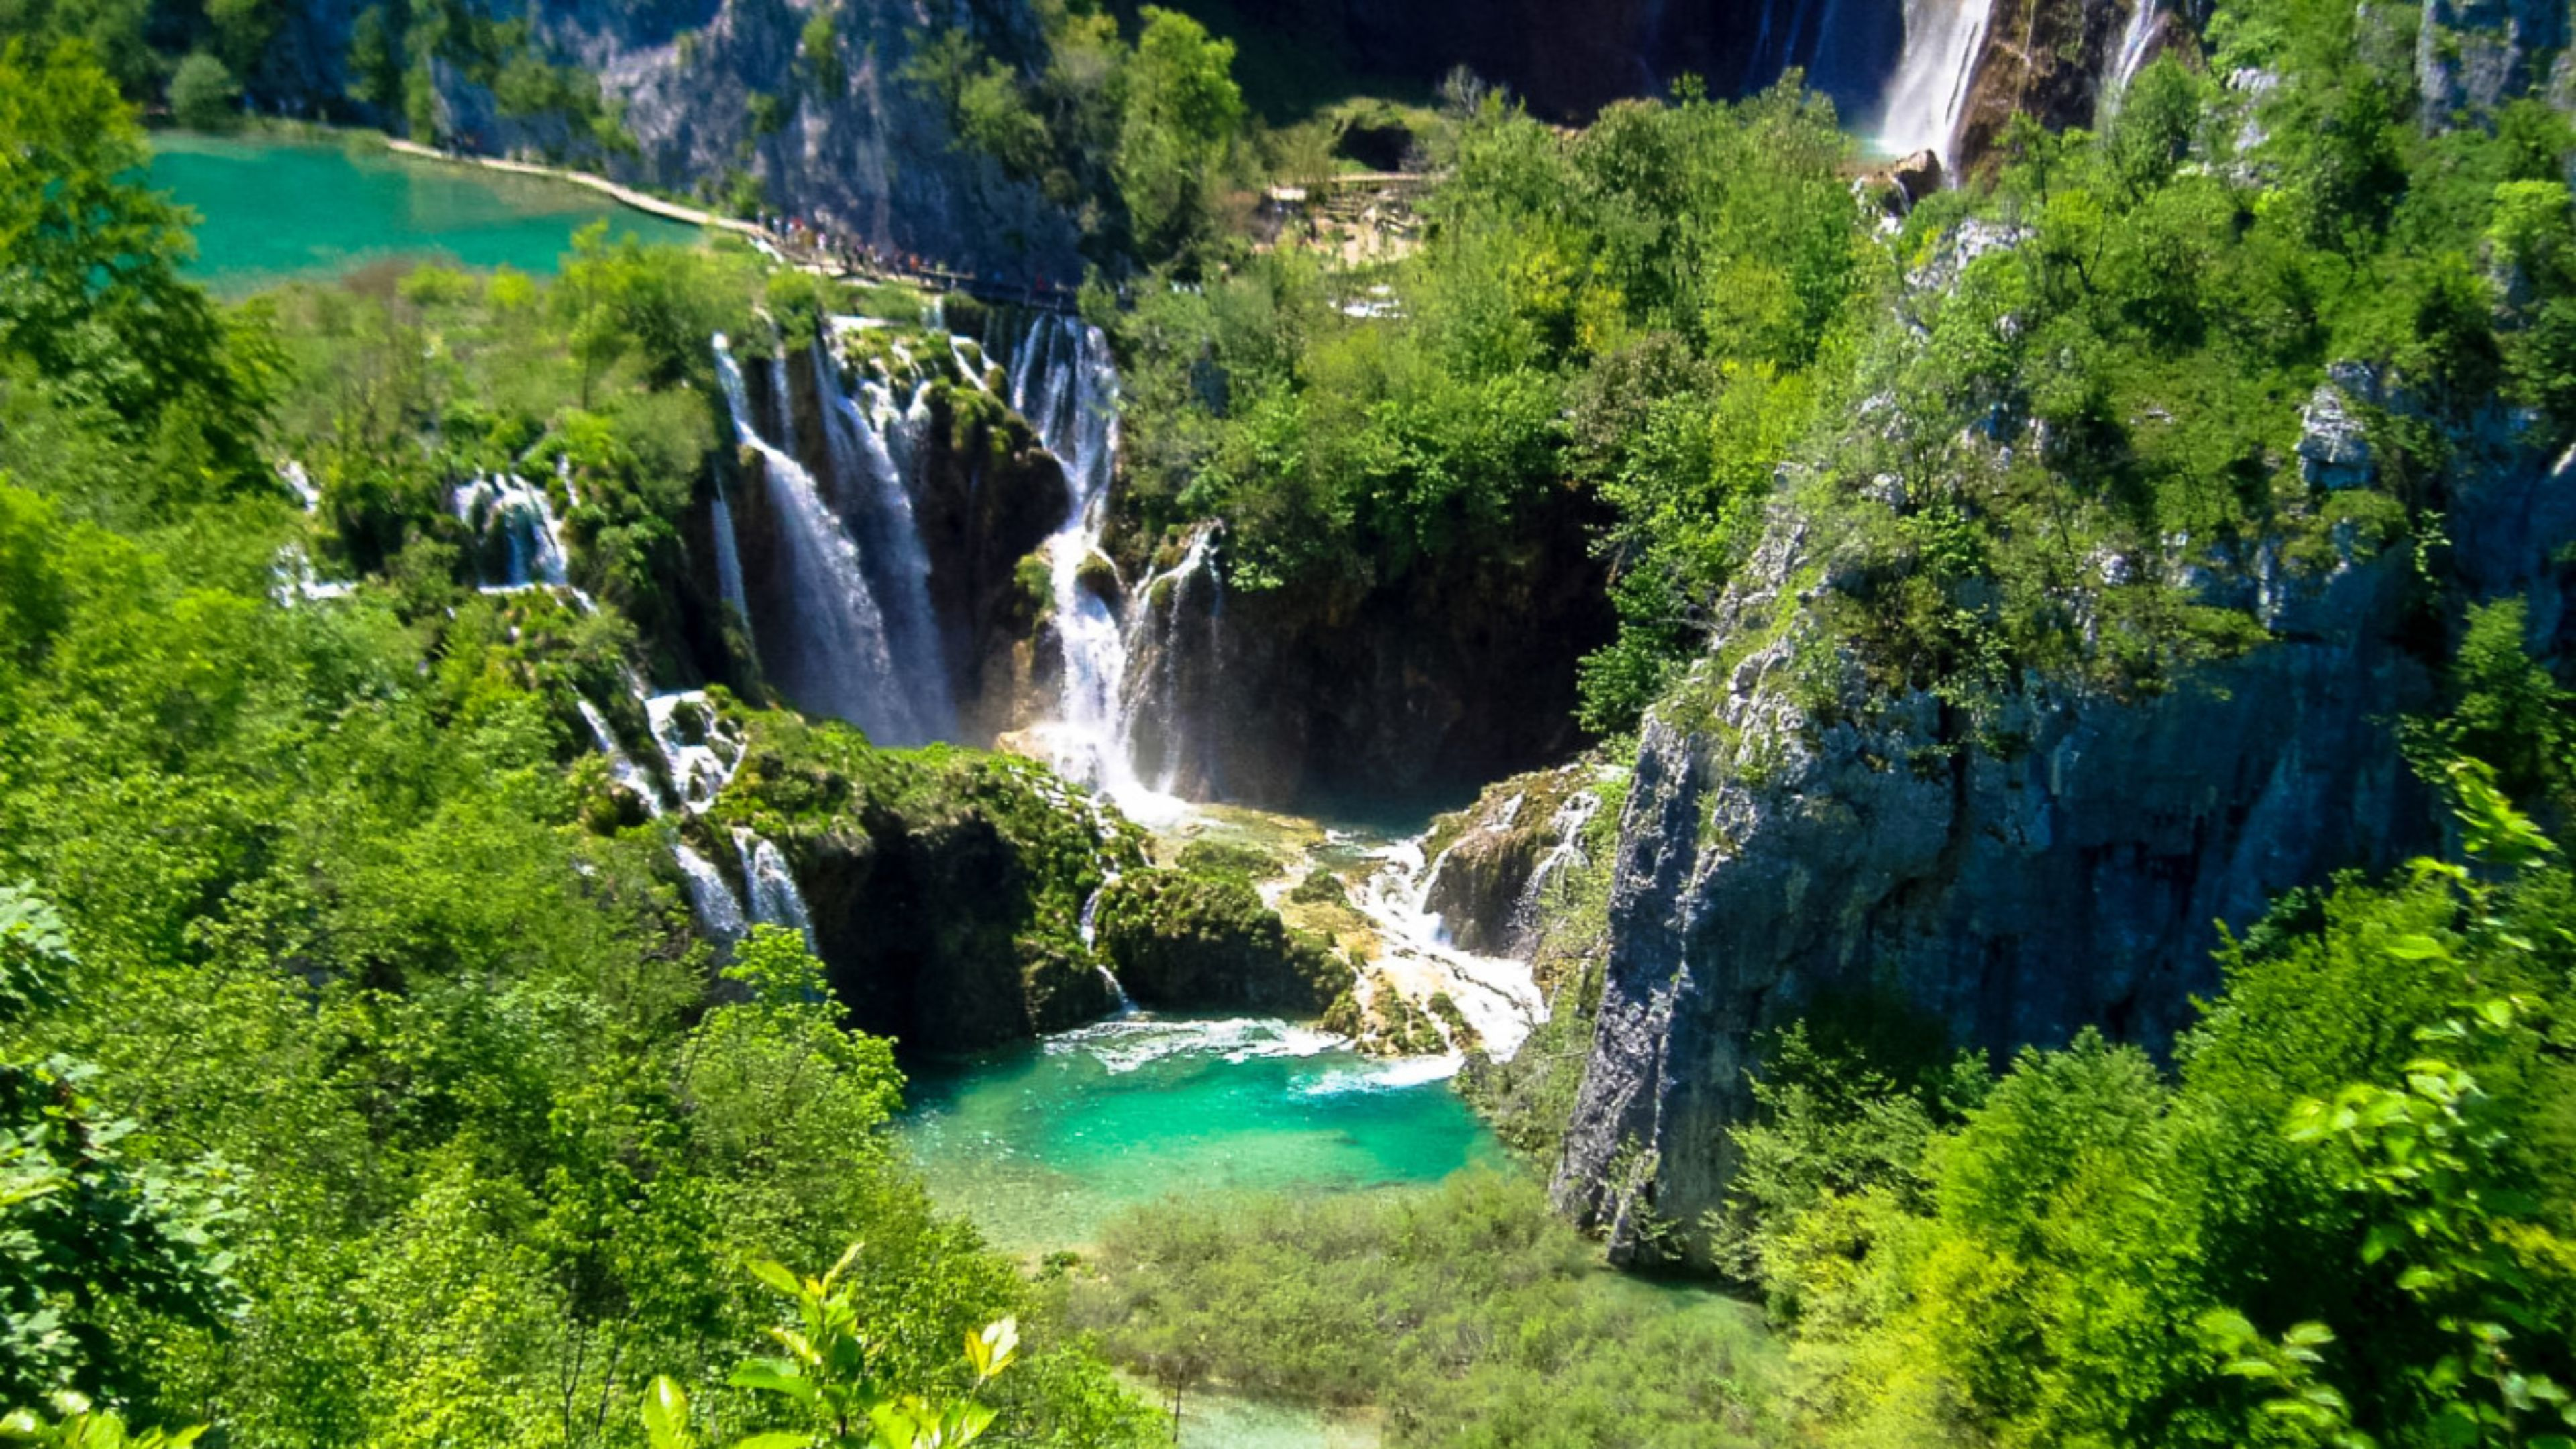 Plitvice lake Wallpapers and Background Images   stmednet 3840x2160